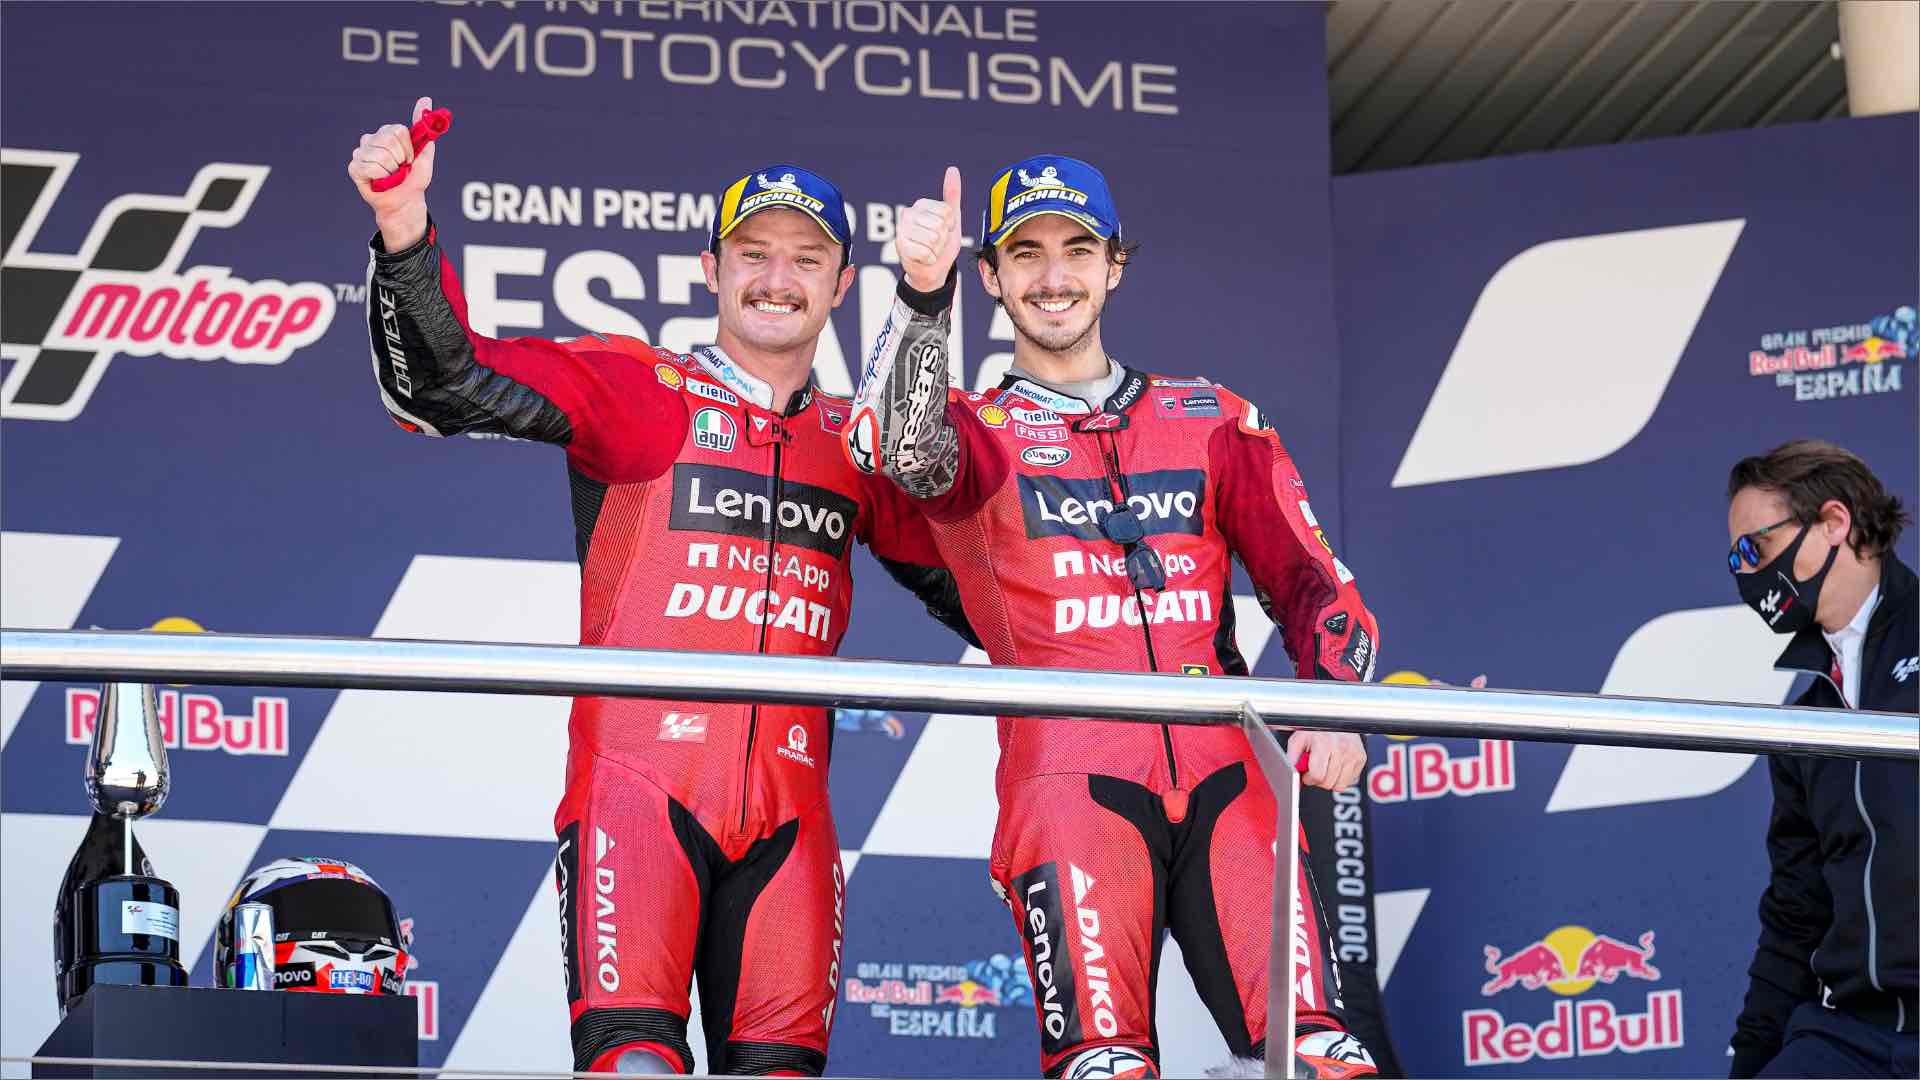 Extraordinary one-two at the Spanish Grand Prix in Jerez for the Ducati Lenovo Team with Miller first and Pecco Bagnaia second.